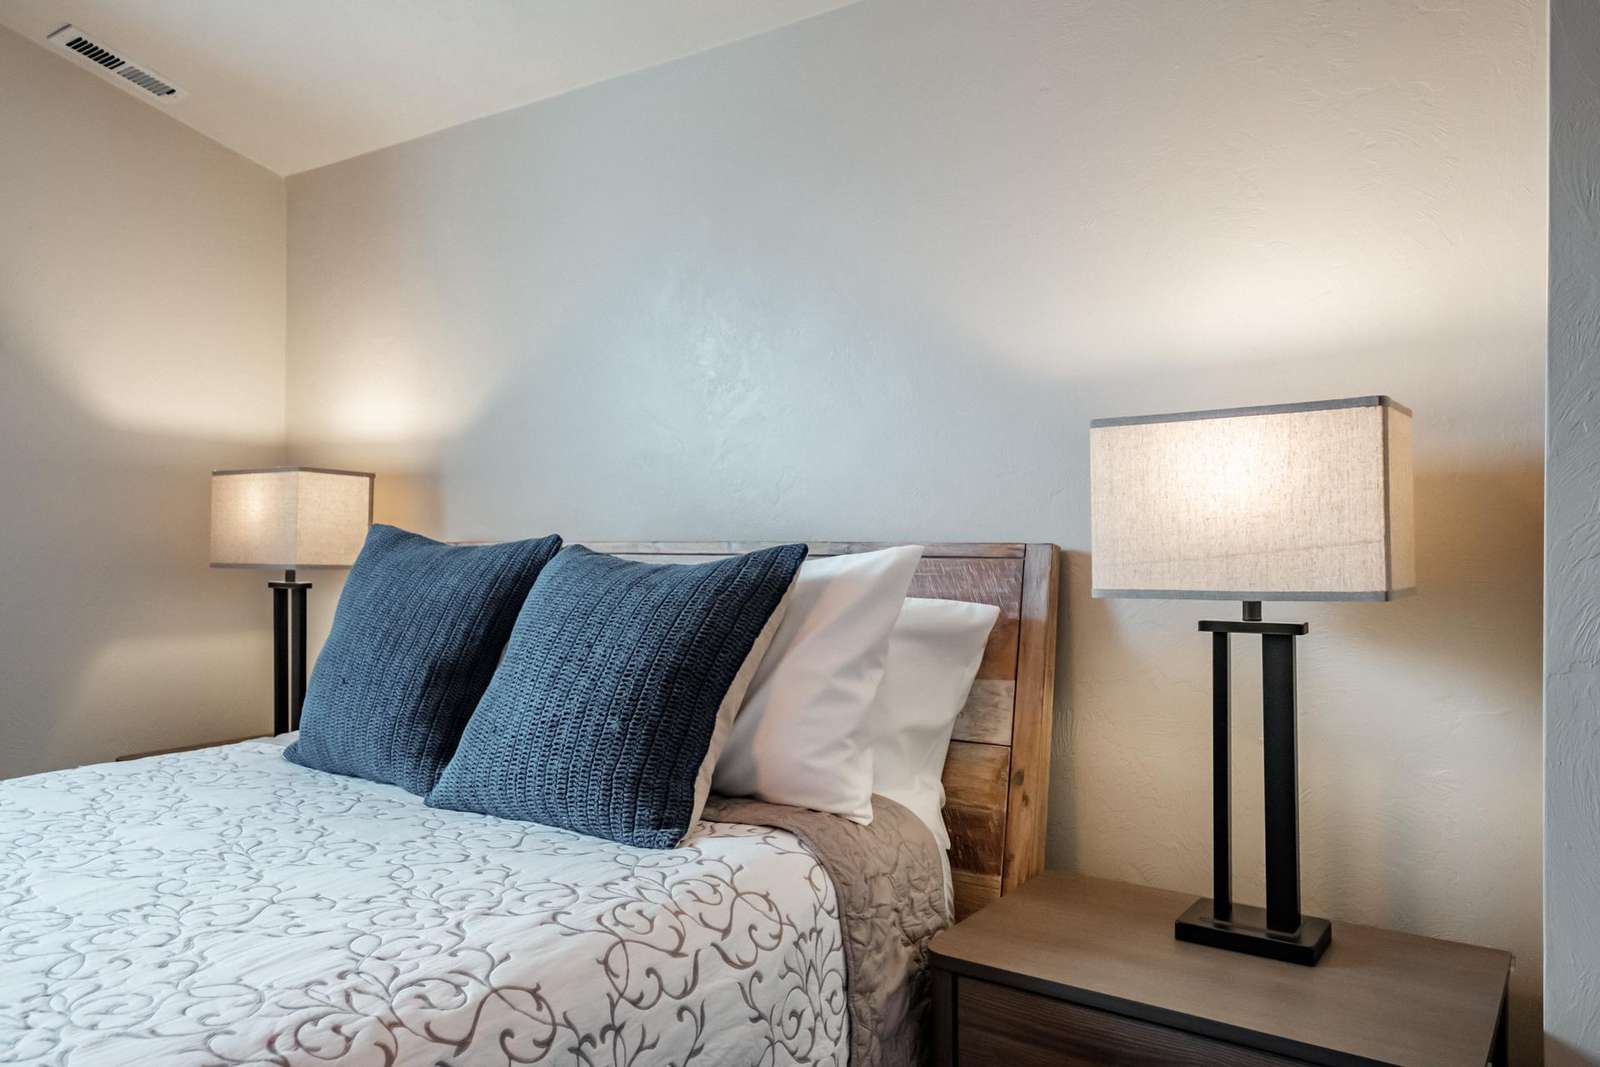 Master bedroom - spacious and warm setting